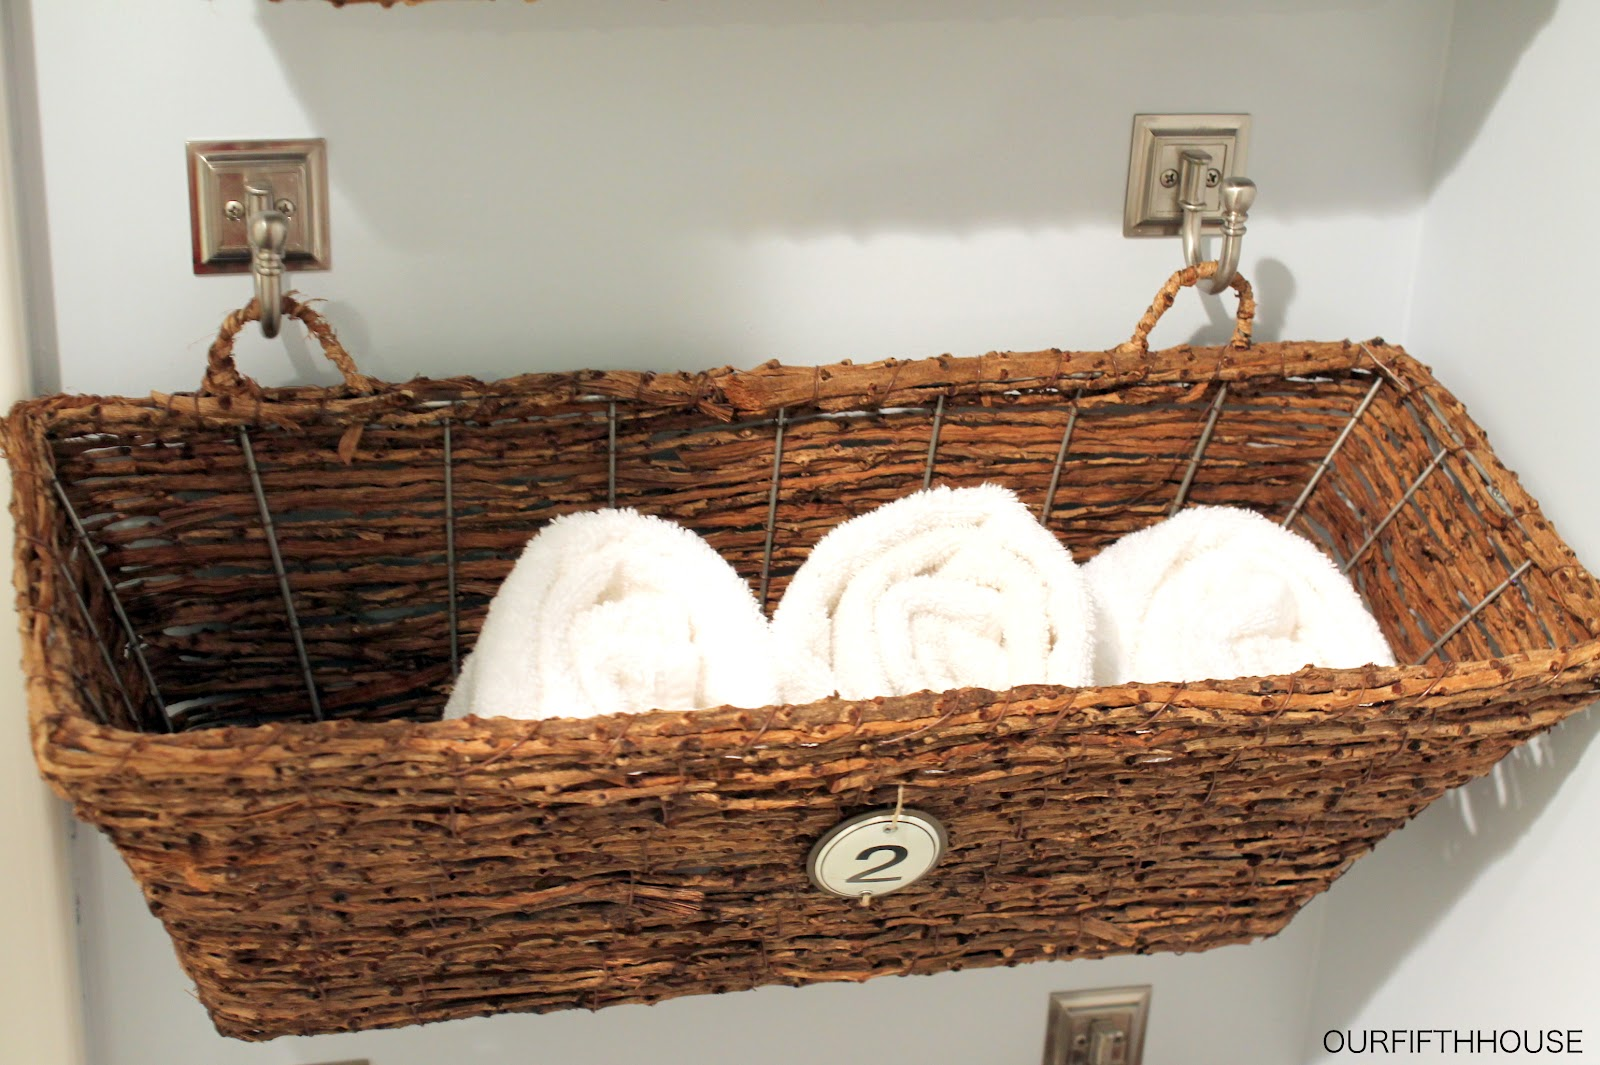 Home underbed storage baskets wicker underbed storage basket - Basket Bathroom Storage Underbed Storage Basket Lined Willow Wicker Basket Wicker Vegetable Baskets